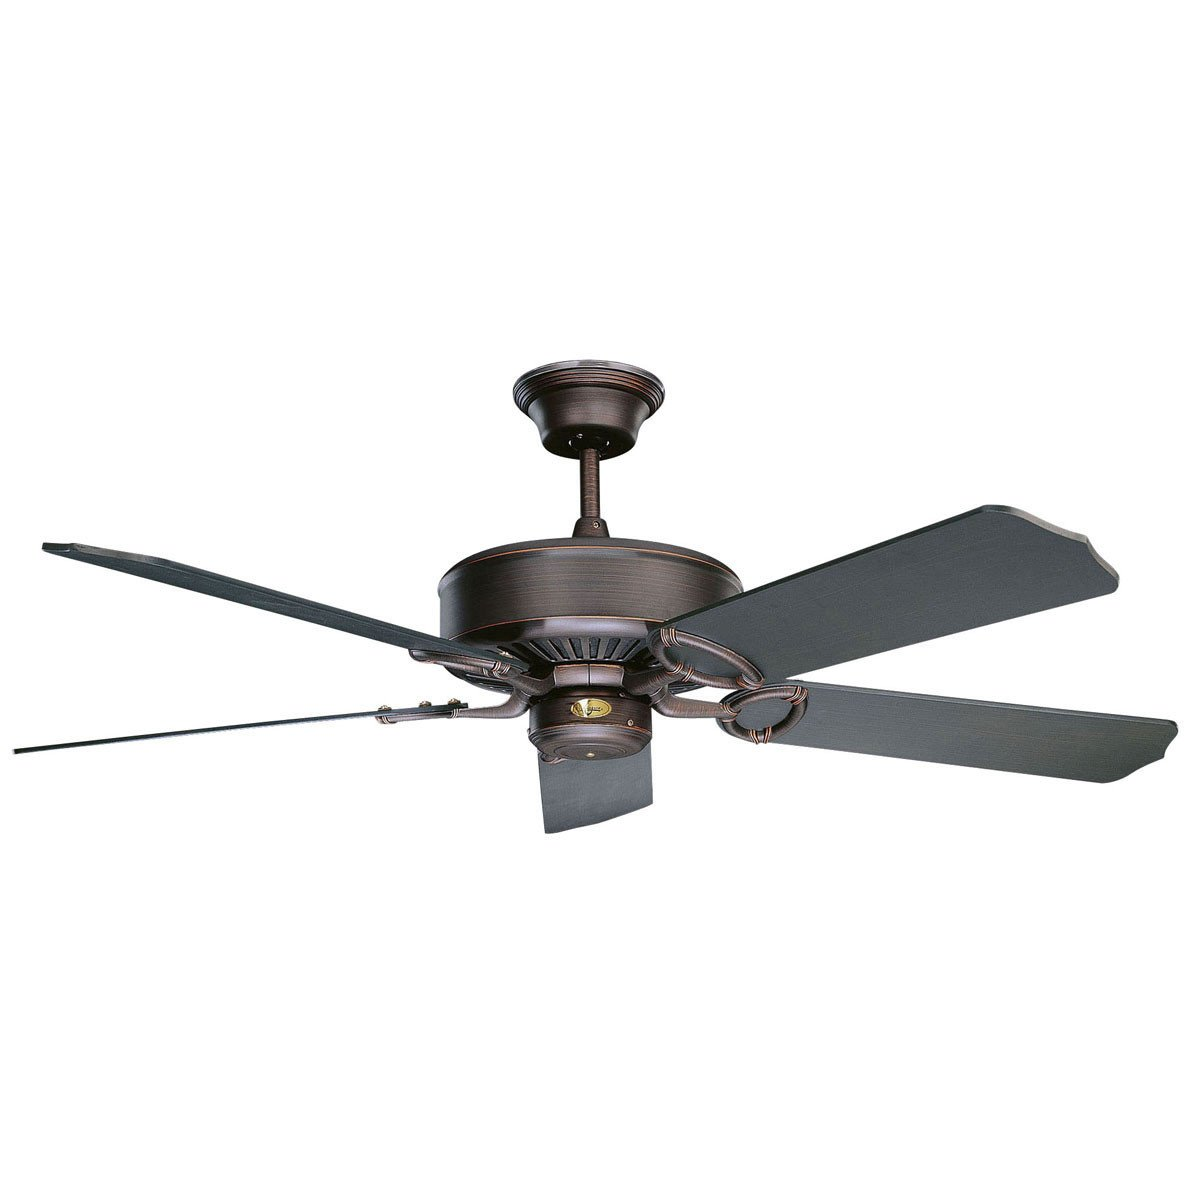 "Concord Fans 60"" Madison Large Oil Rubbed Bronze Modern Ceiling Fan"